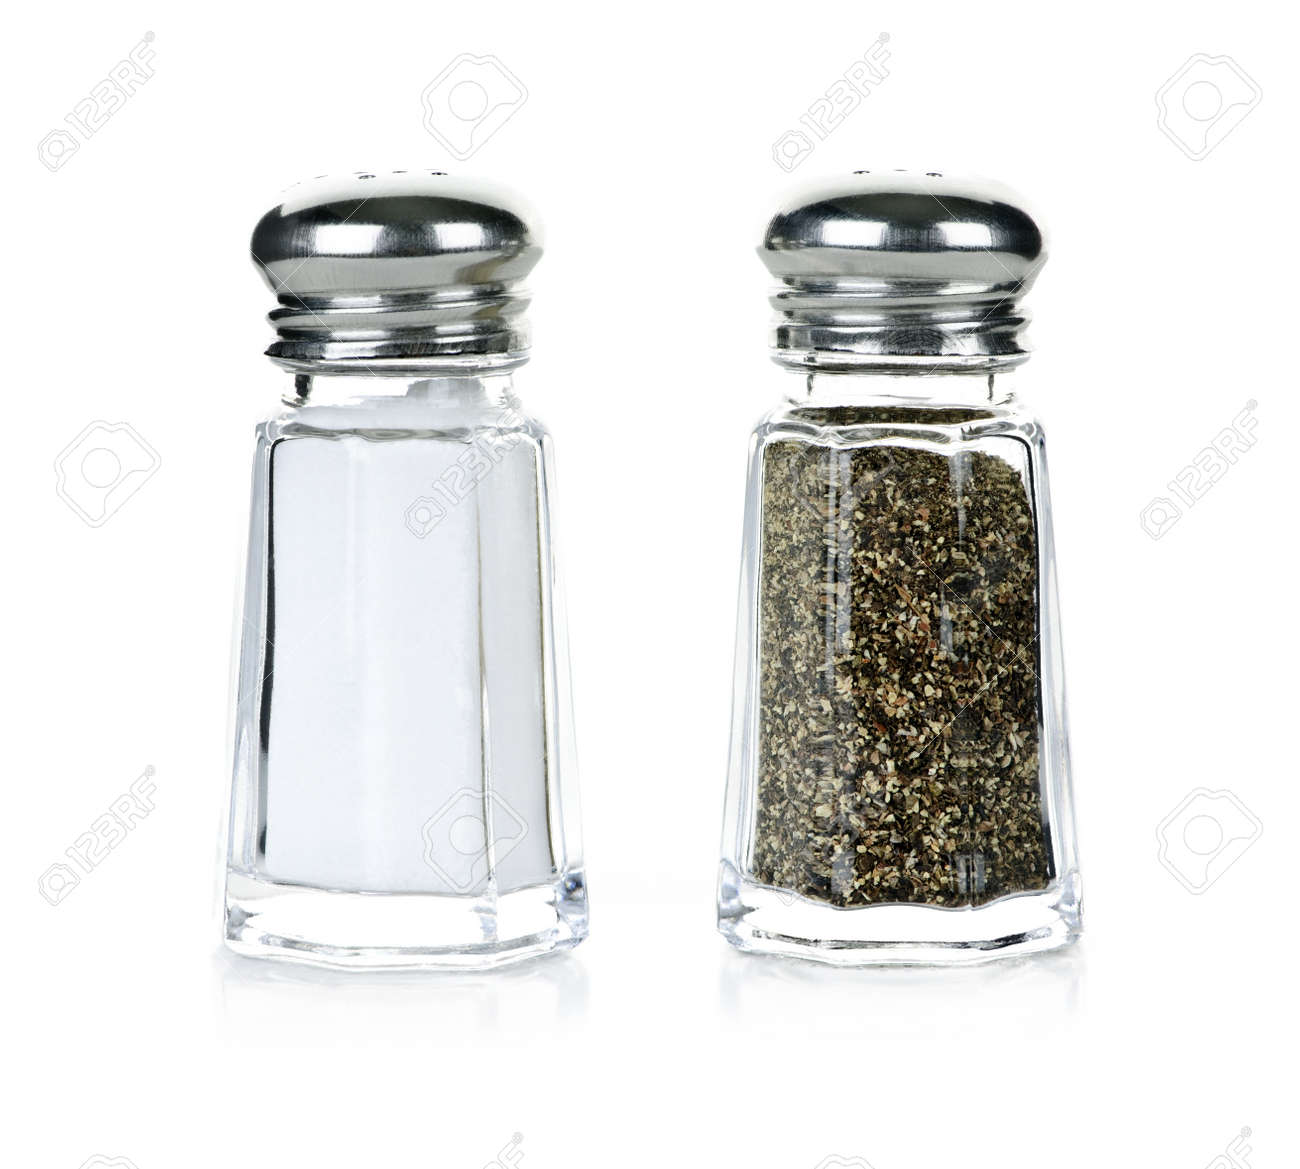 Glass salt and pepper shakers isolated on white background Stock Photo - 7745756